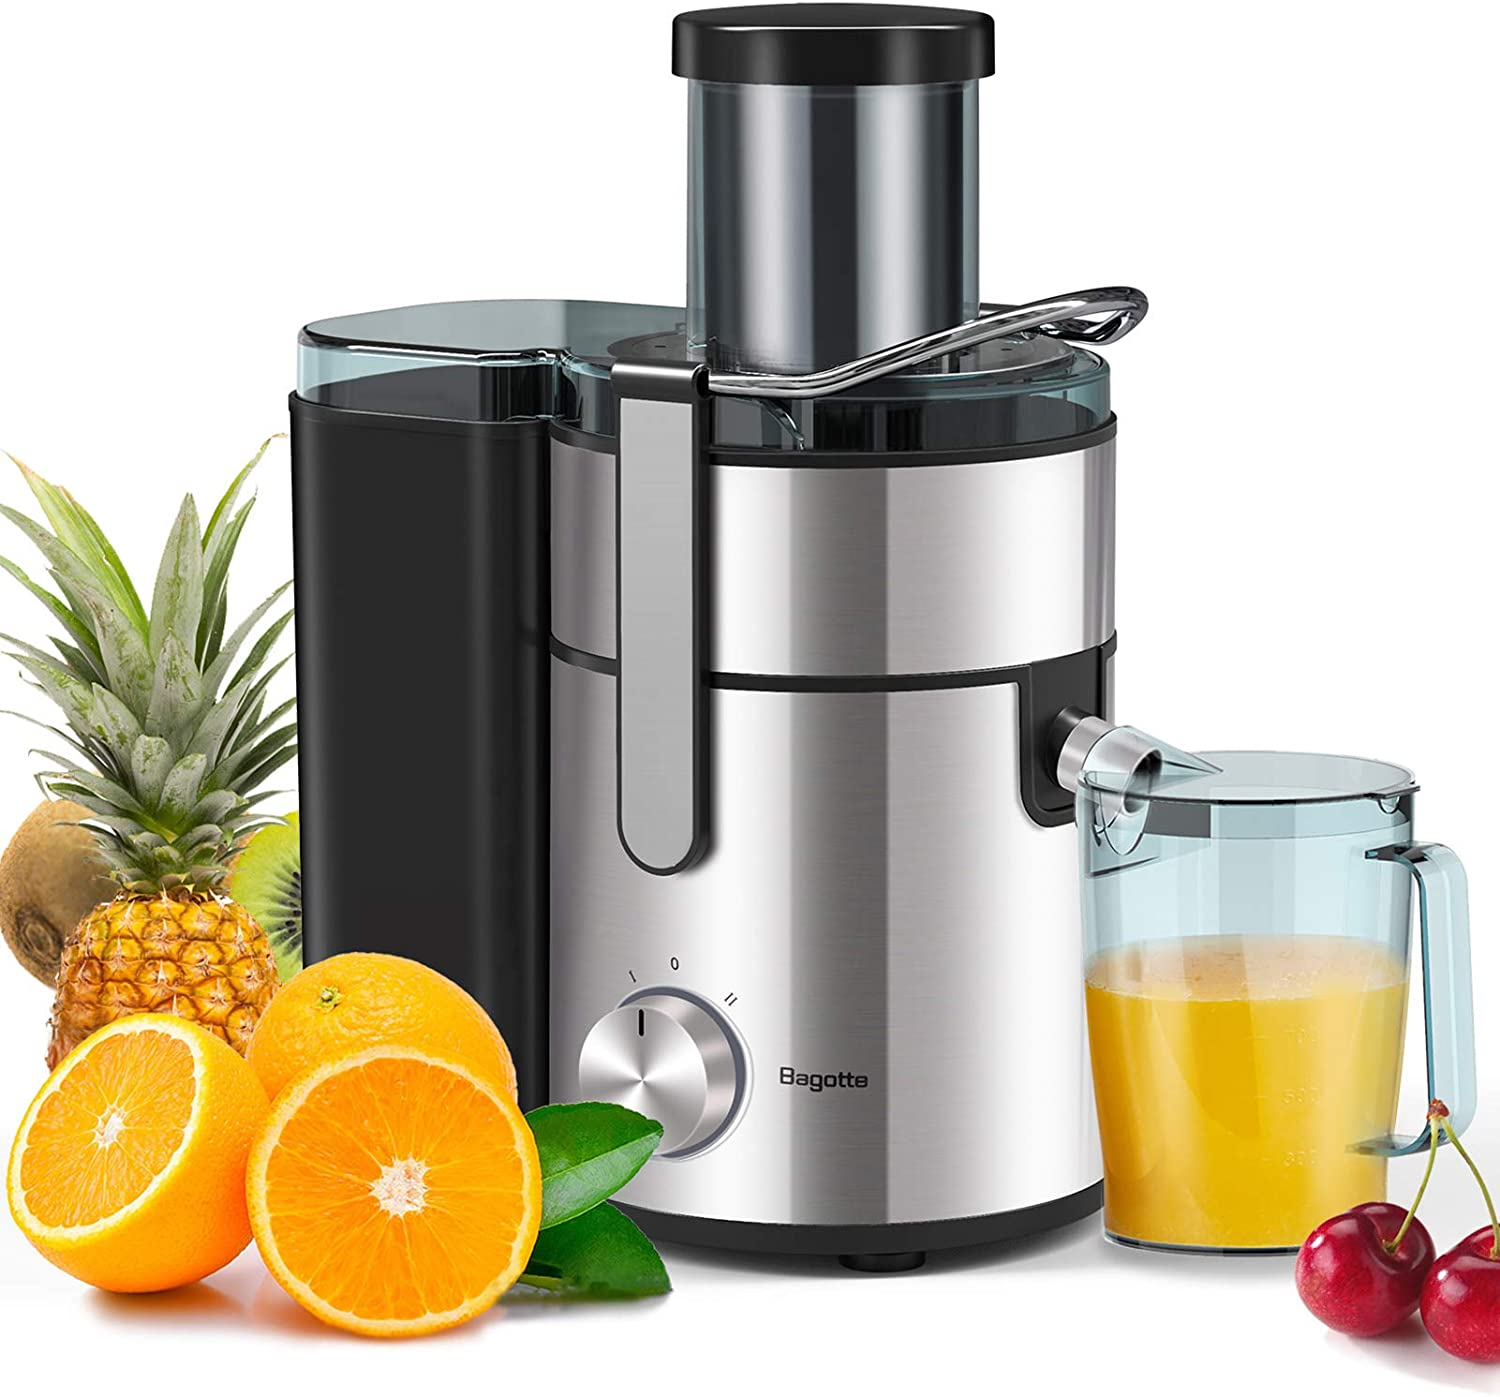 Best Centrifugal Juicers 2021 - TOP Picks & Buying Guide 6